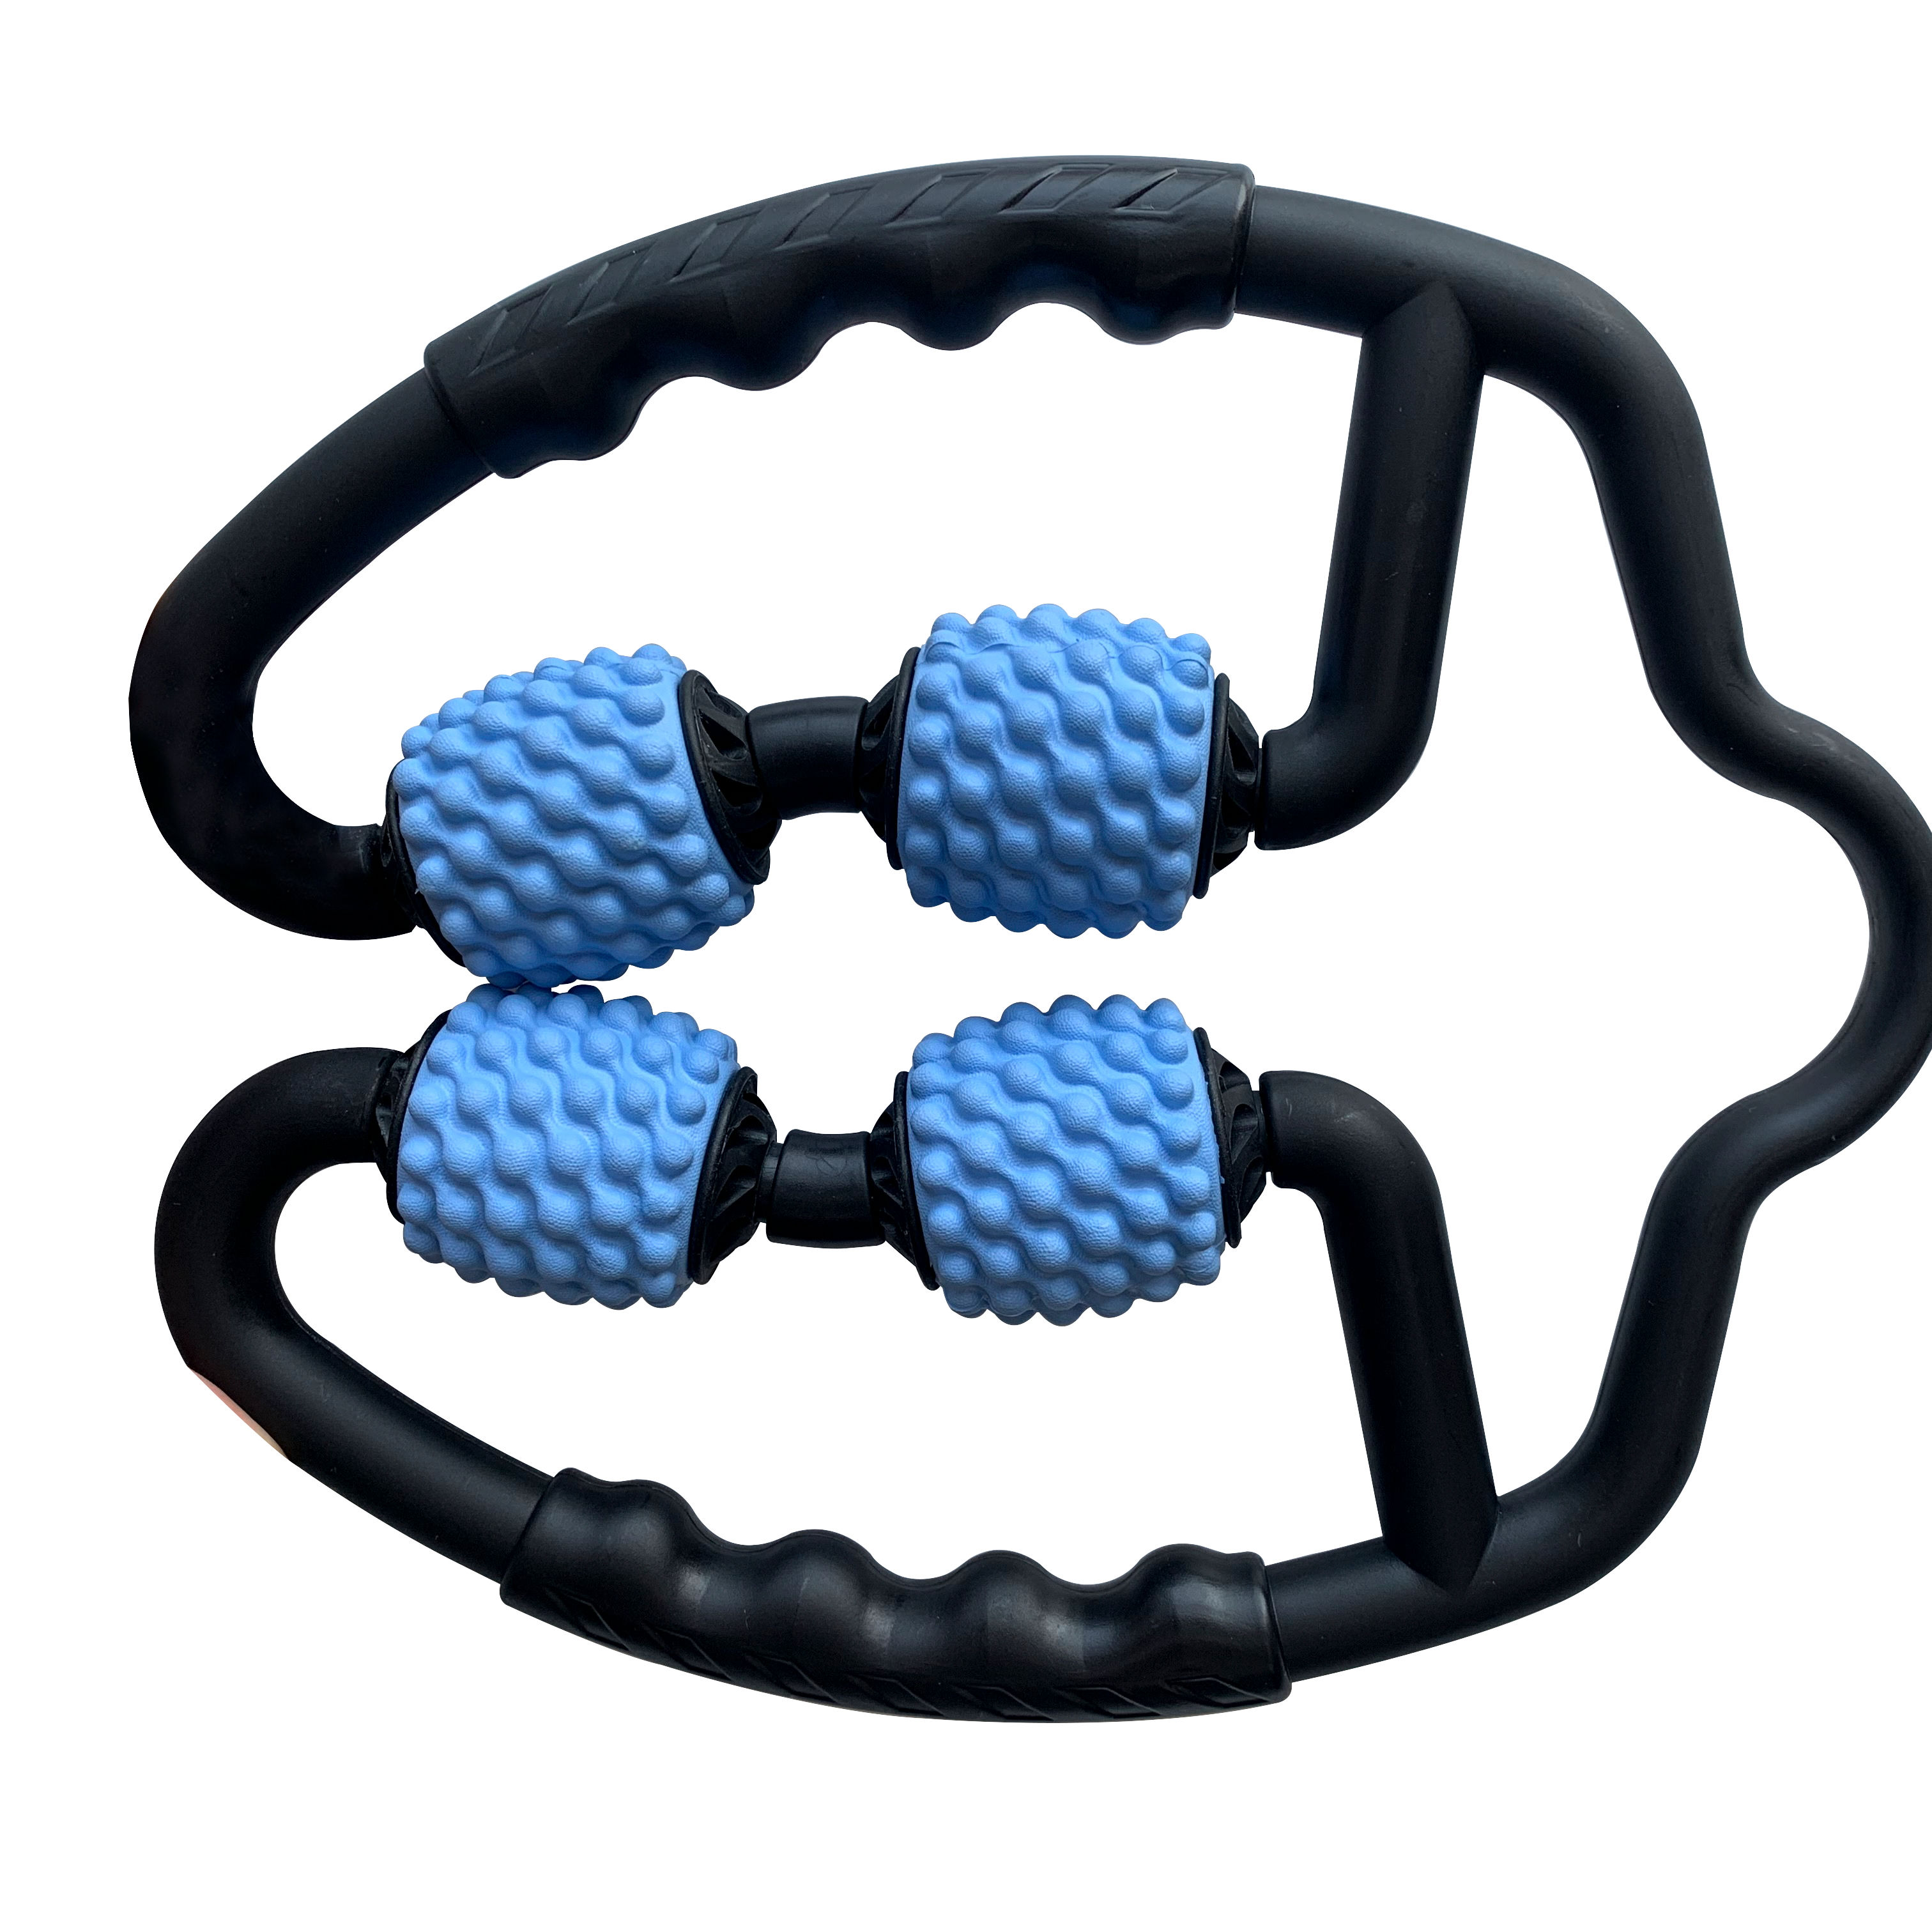 4 wheel U shape Leg body neck arms 4 massae balls massage roller for muscle relaxation